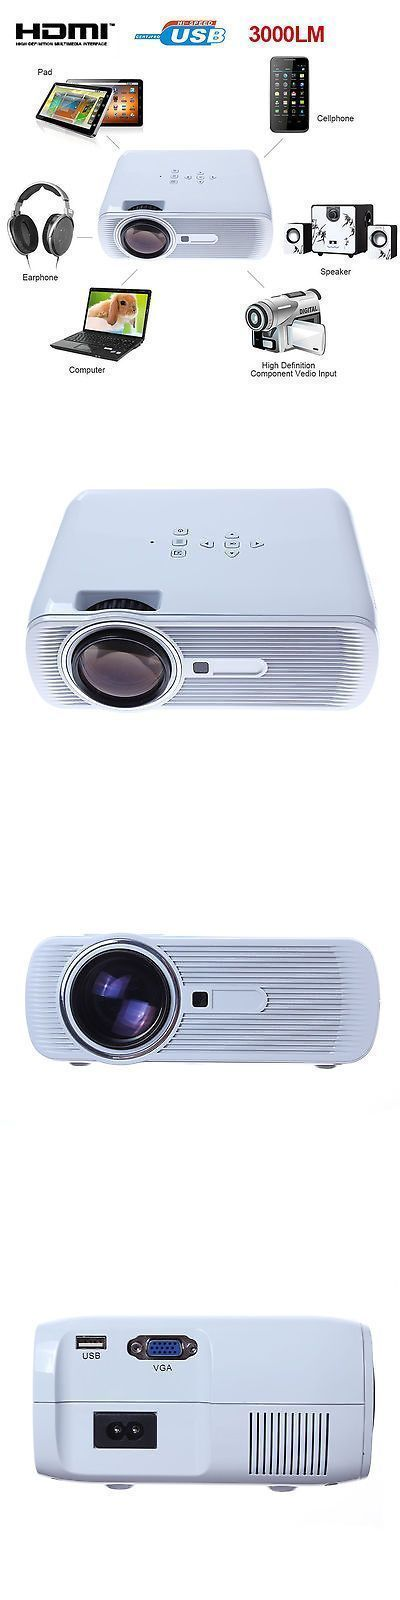 Home Theater Projectors: 3D 1080P 3000 Lumens Projector Home Theater Cinema Led/Lcd Hdmi Vga Av Tv Vga Hd BUY IT NOW ONLY: $101.5 #hometheatreprojectors #homecinemaprojector